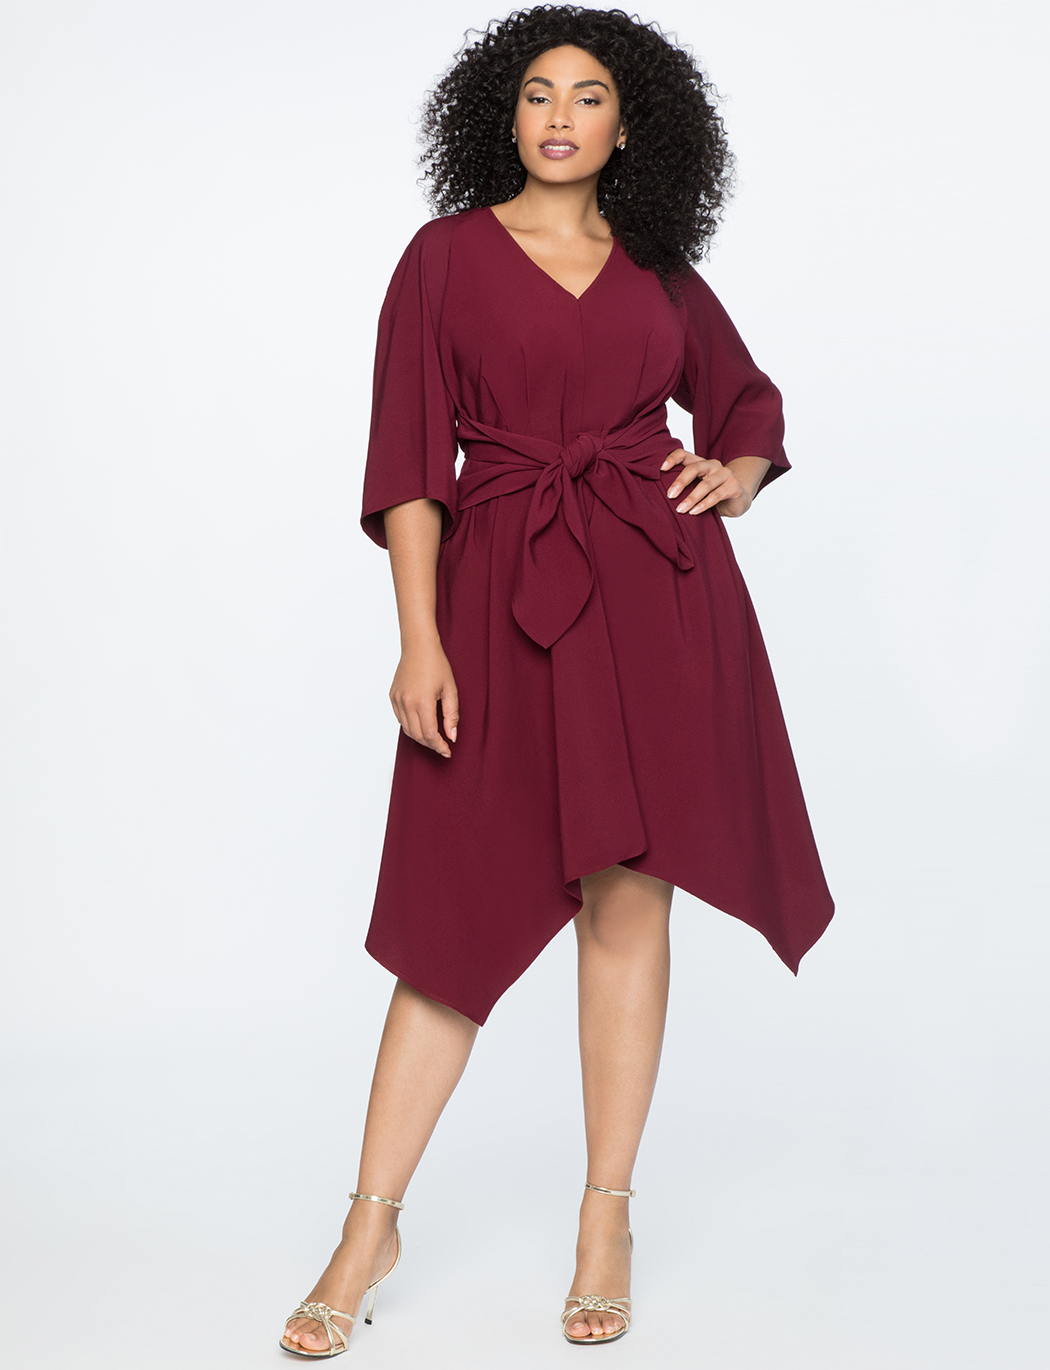 Tie Waist High-Low Dress   $69.90